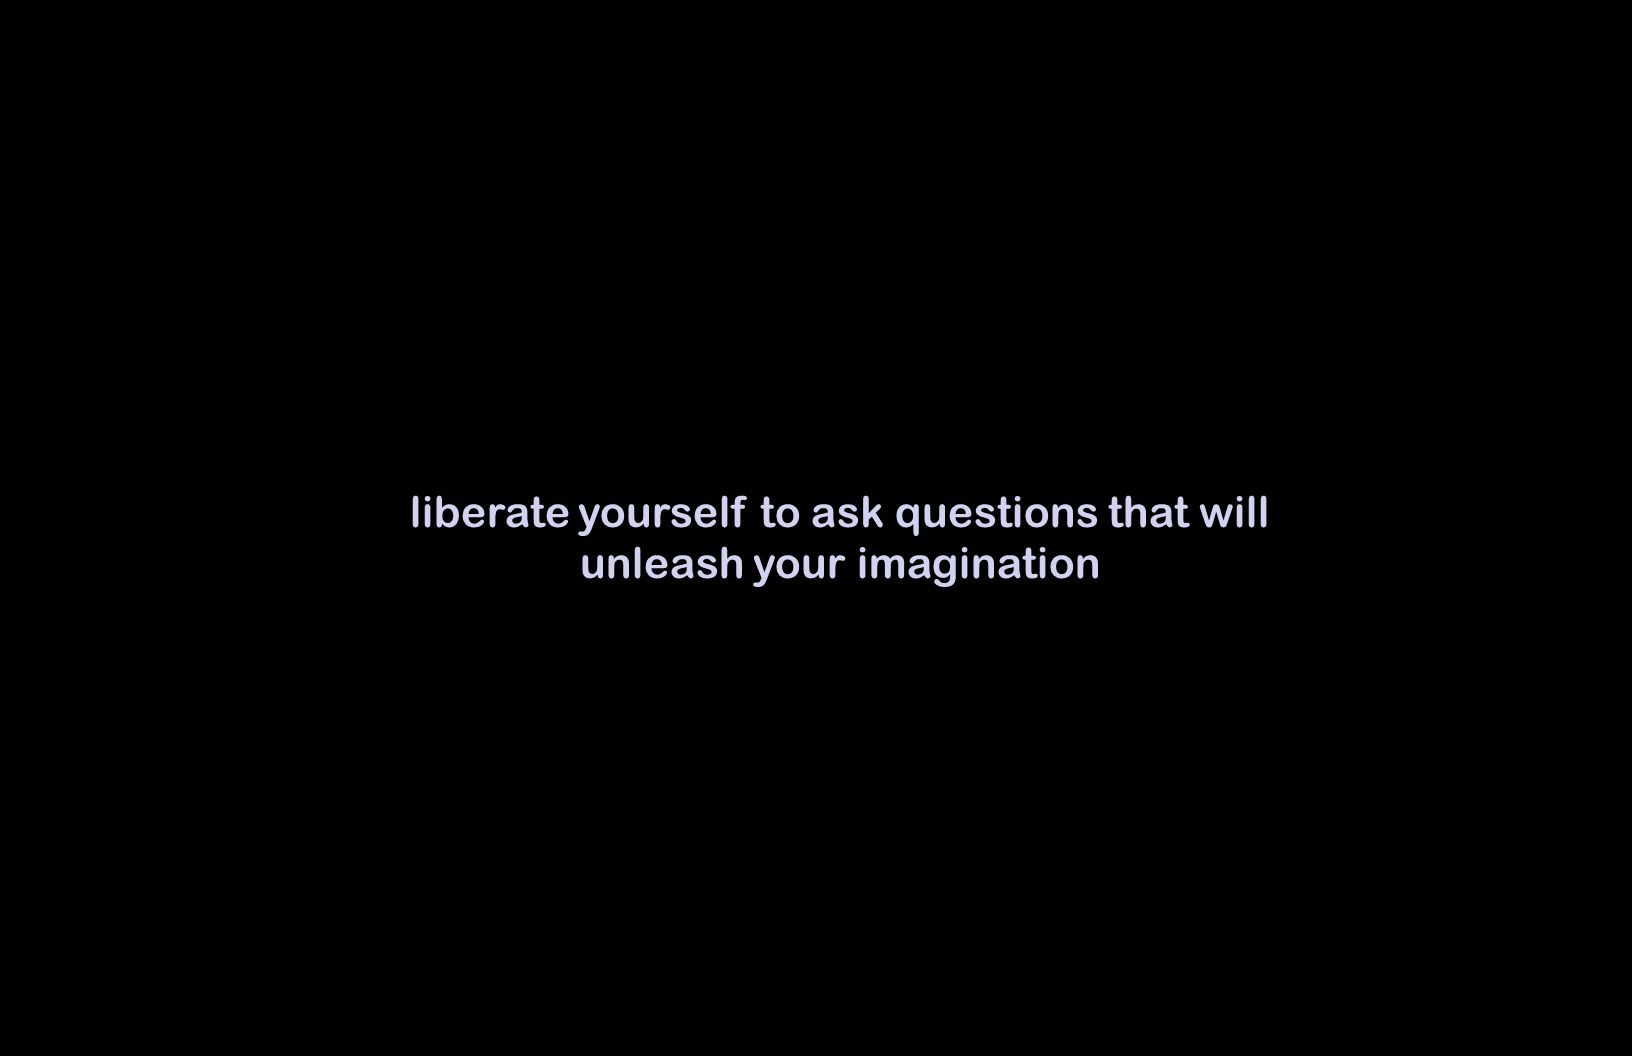 liberate yourself to ask questions that will unleash your imagination